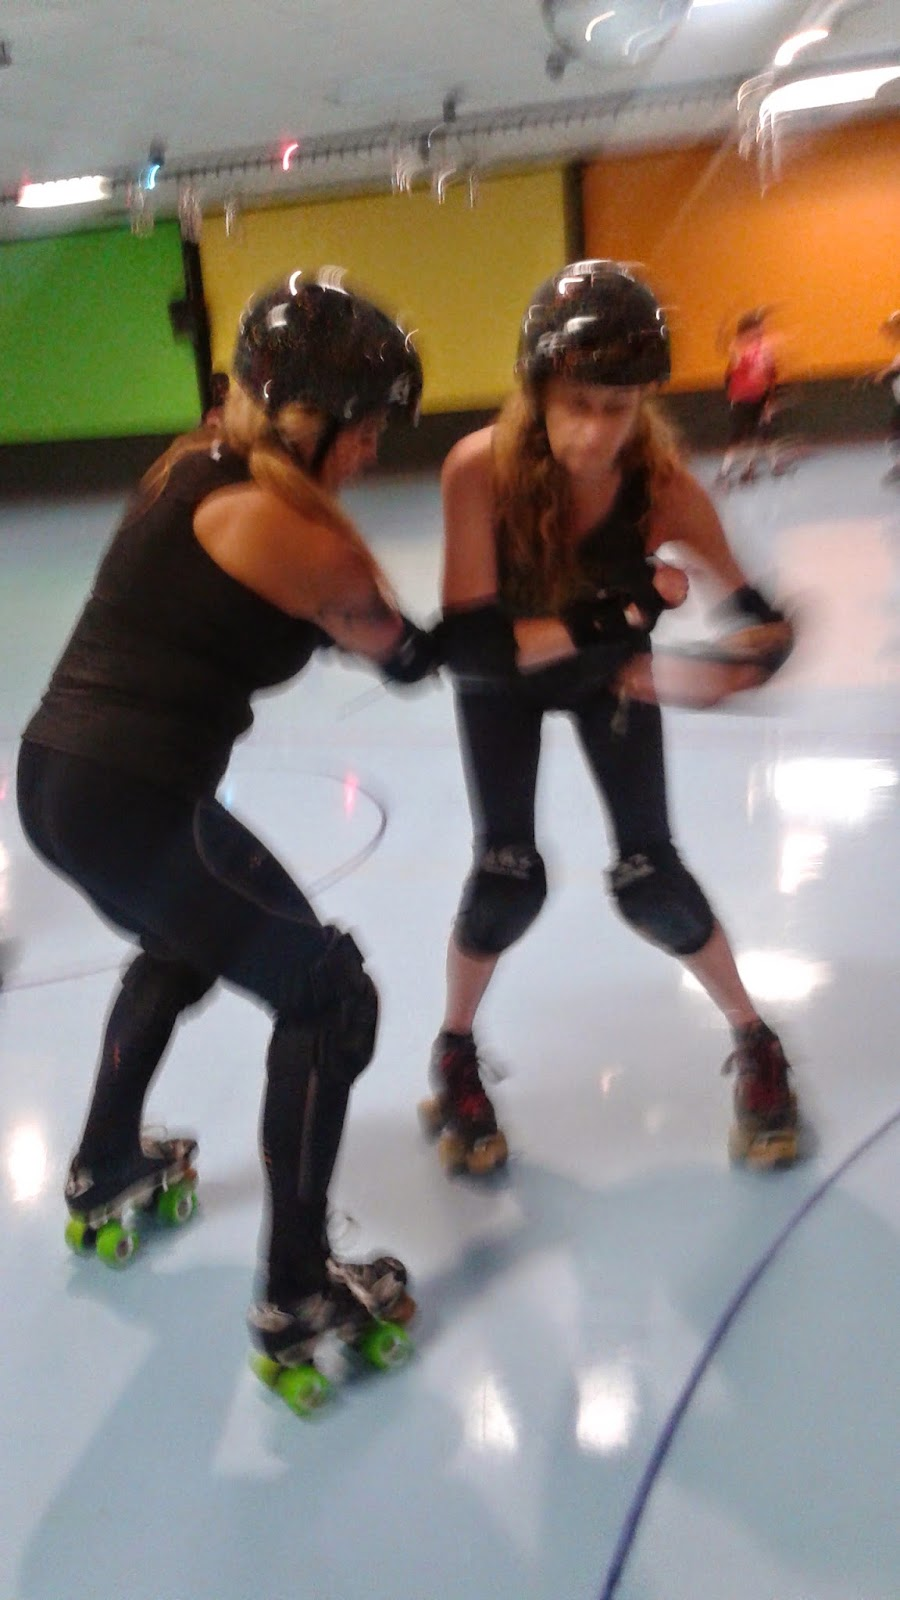 Roller skating rink rohnert park - How Are You Effective As The 4th Blocker